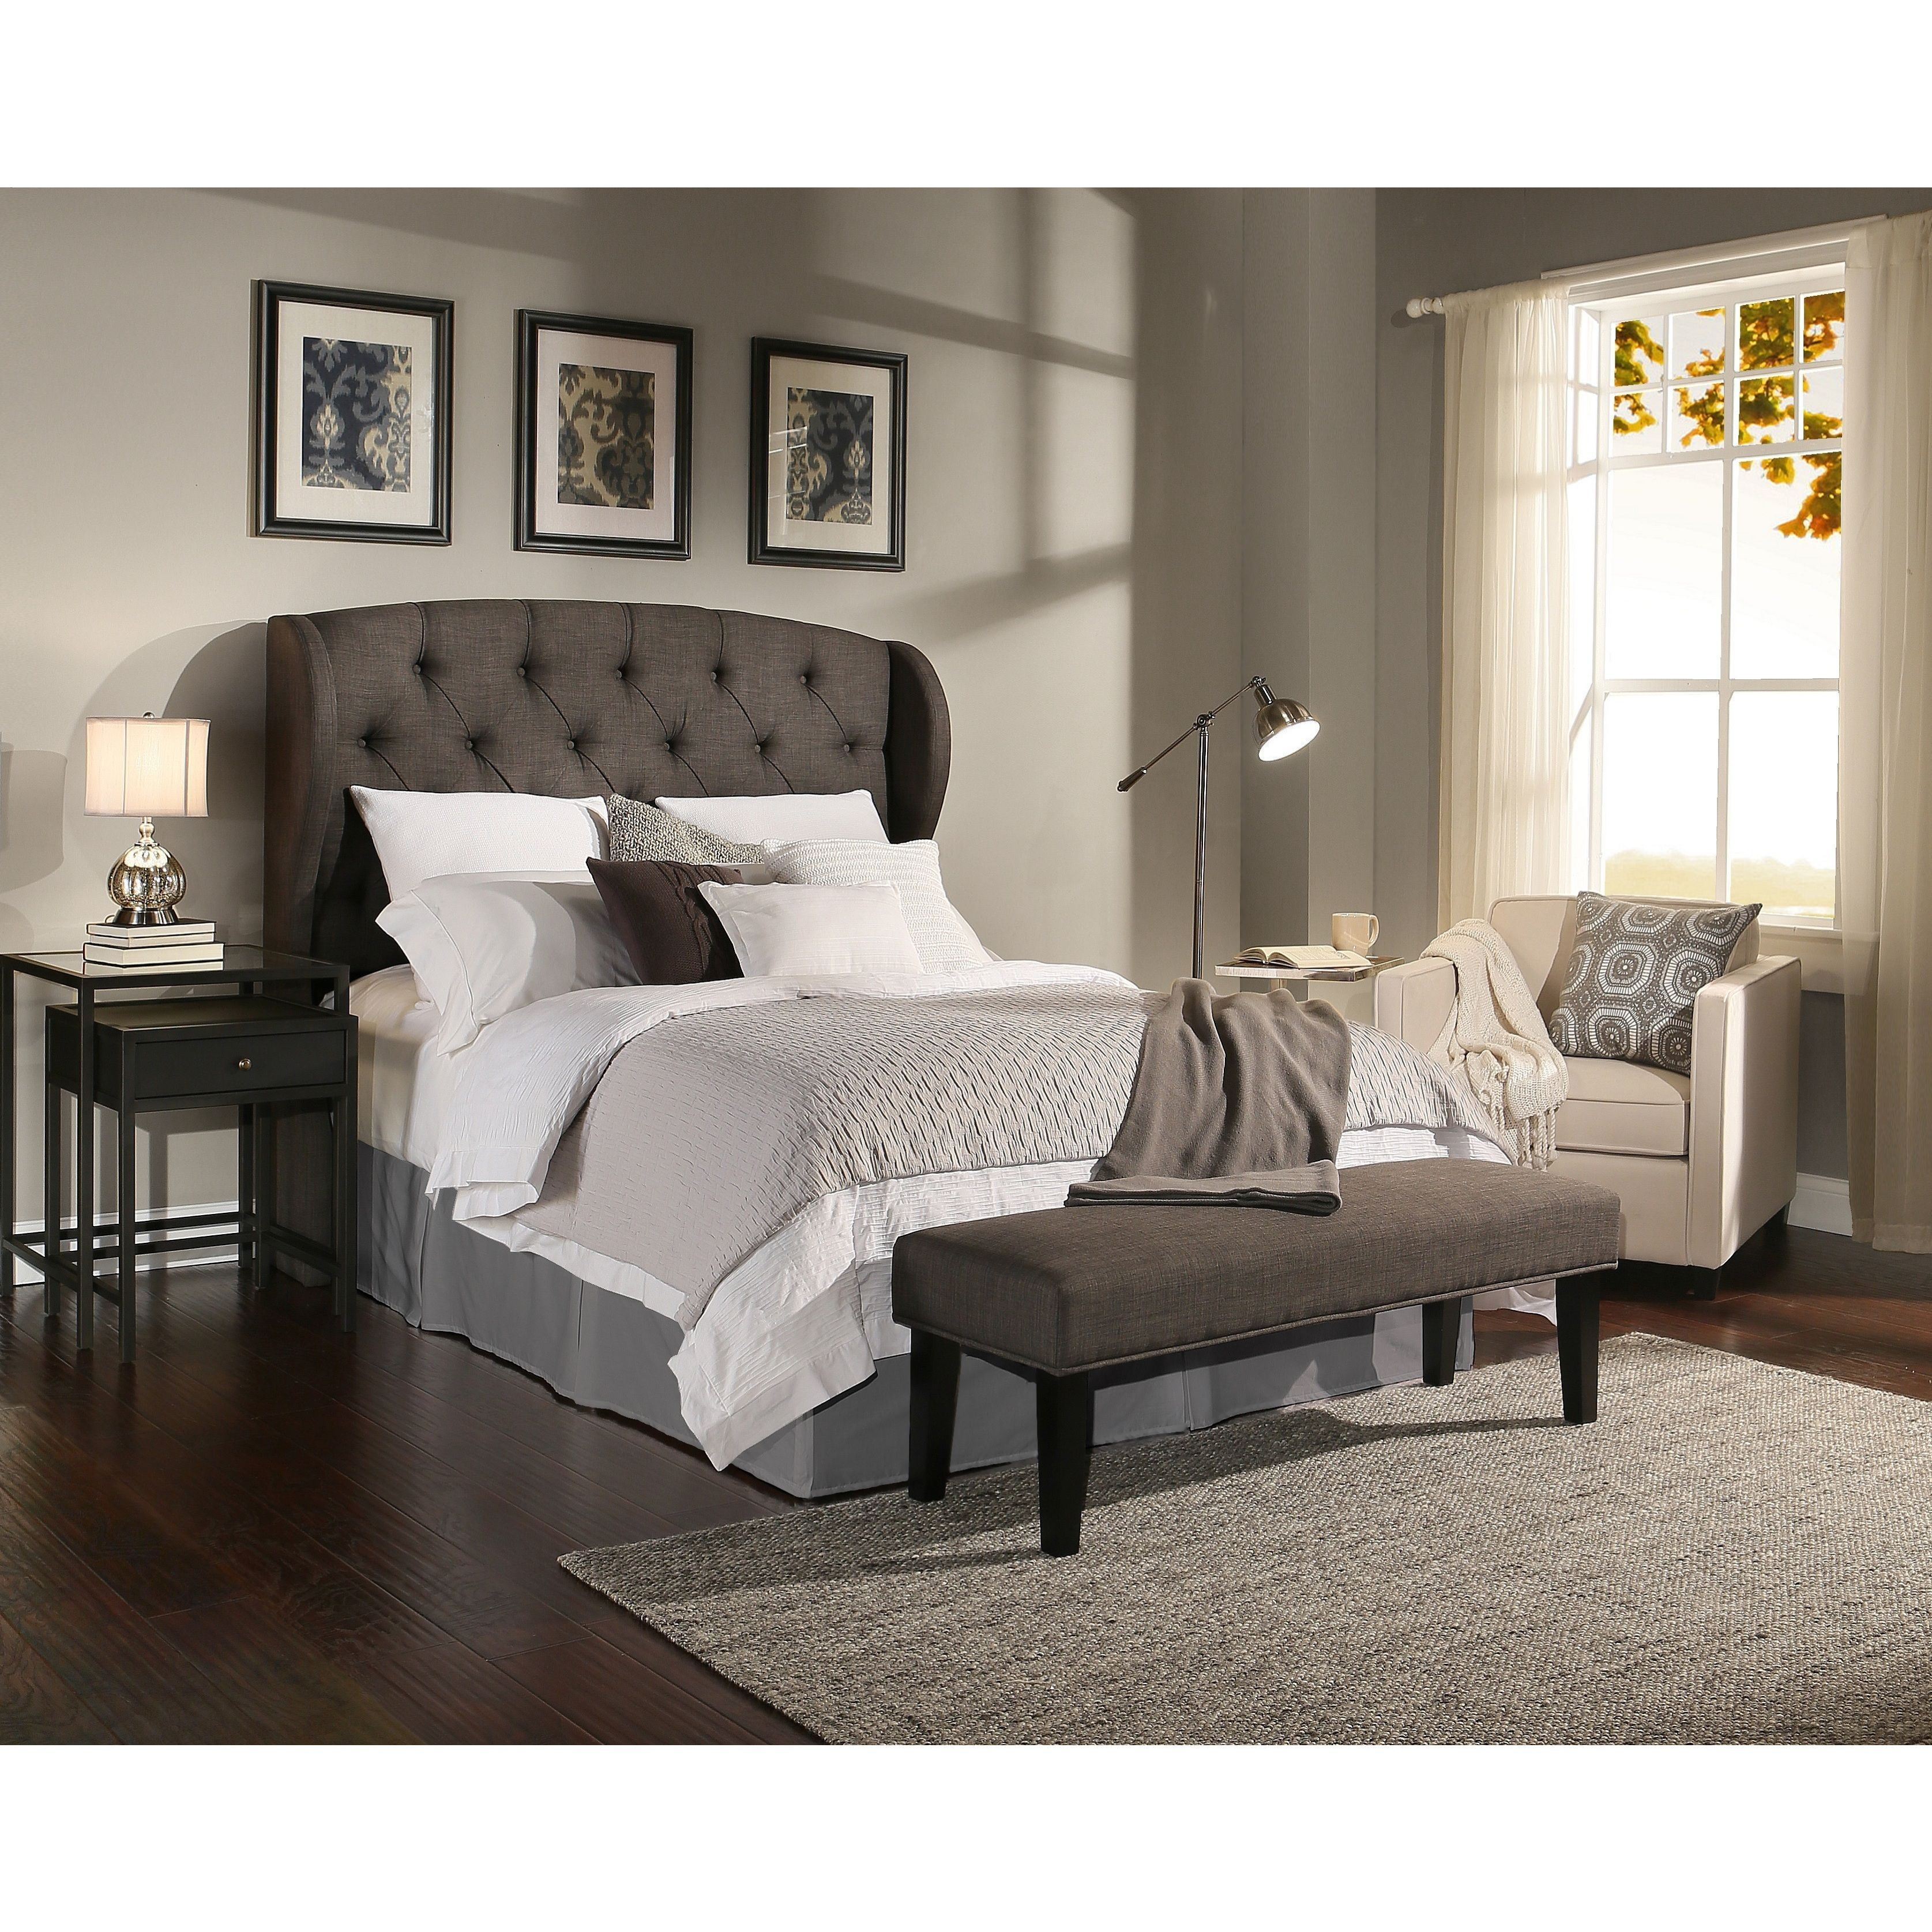 Republic Design House Archer Grey Tufted Upholstered Headboard ...